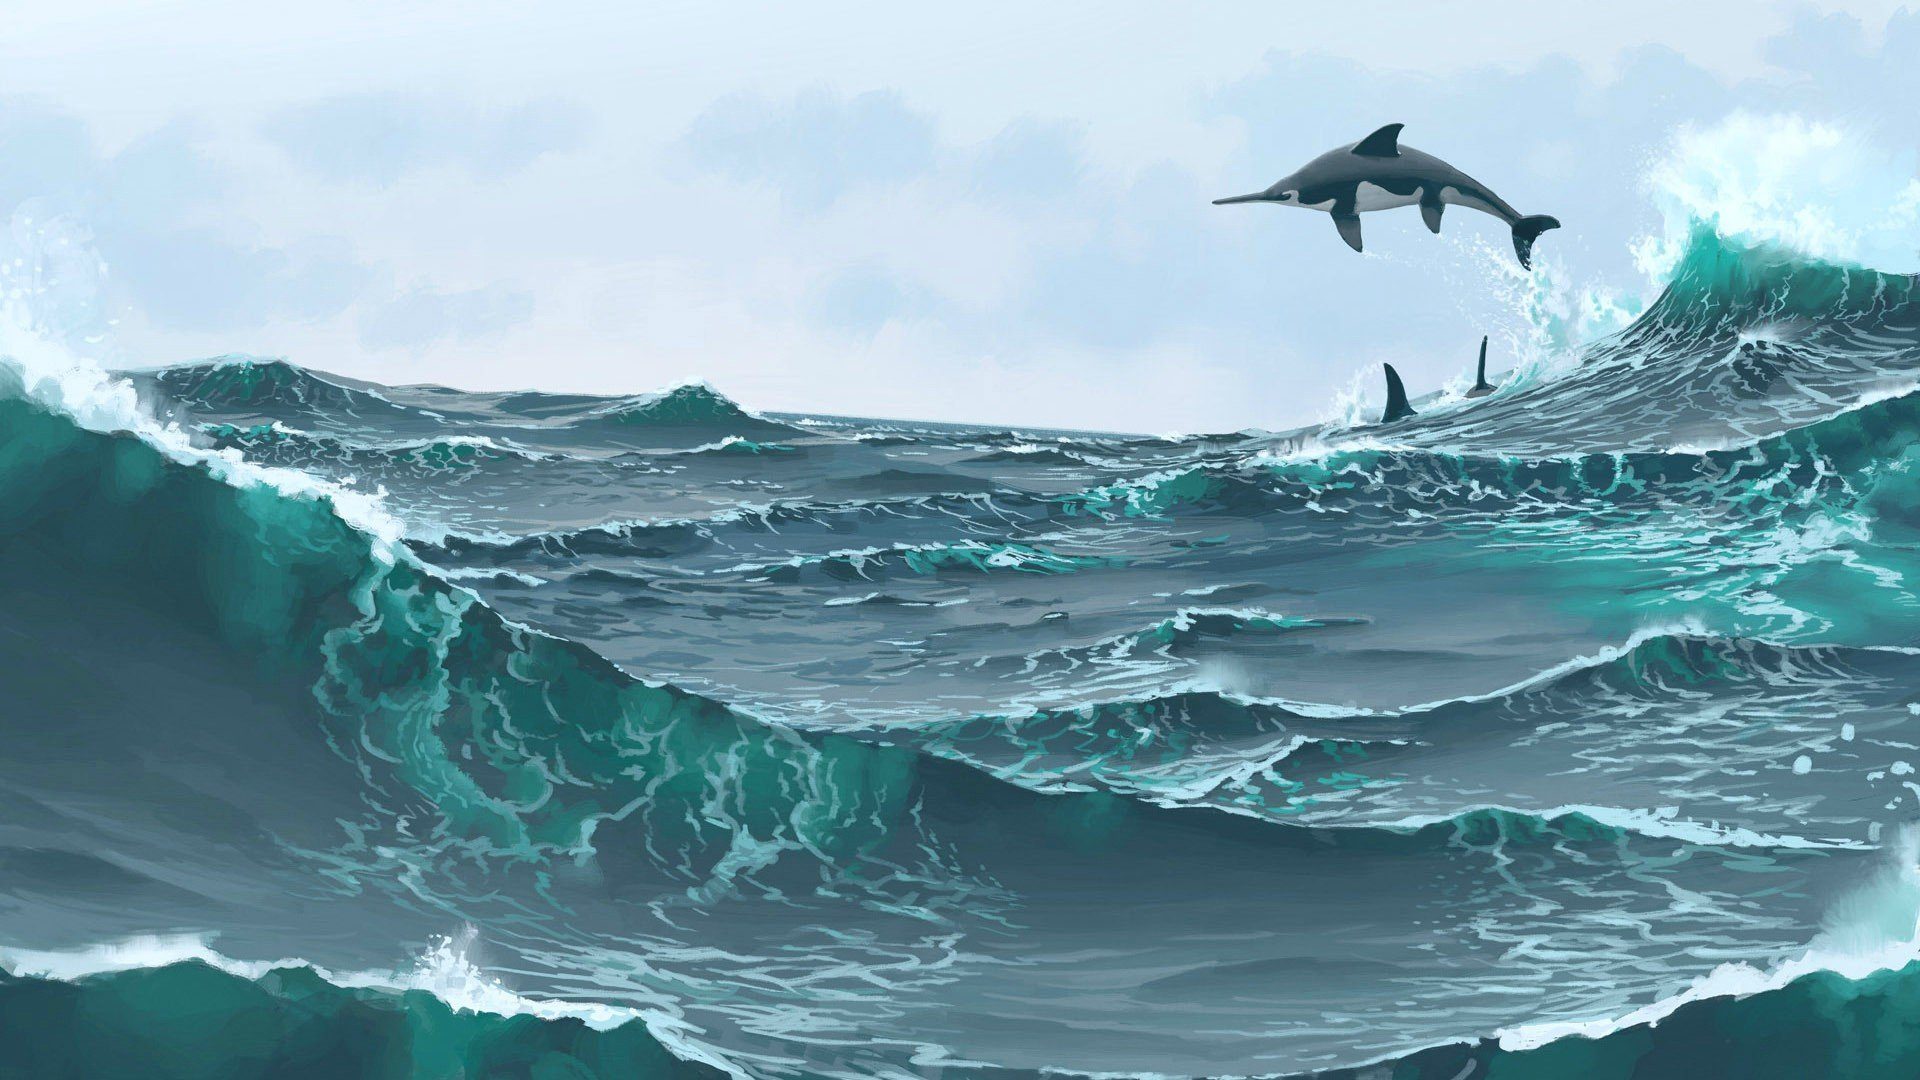 Dolphin ocean sea wave artwork wallpaper | 1920x1080 | 766568 ...